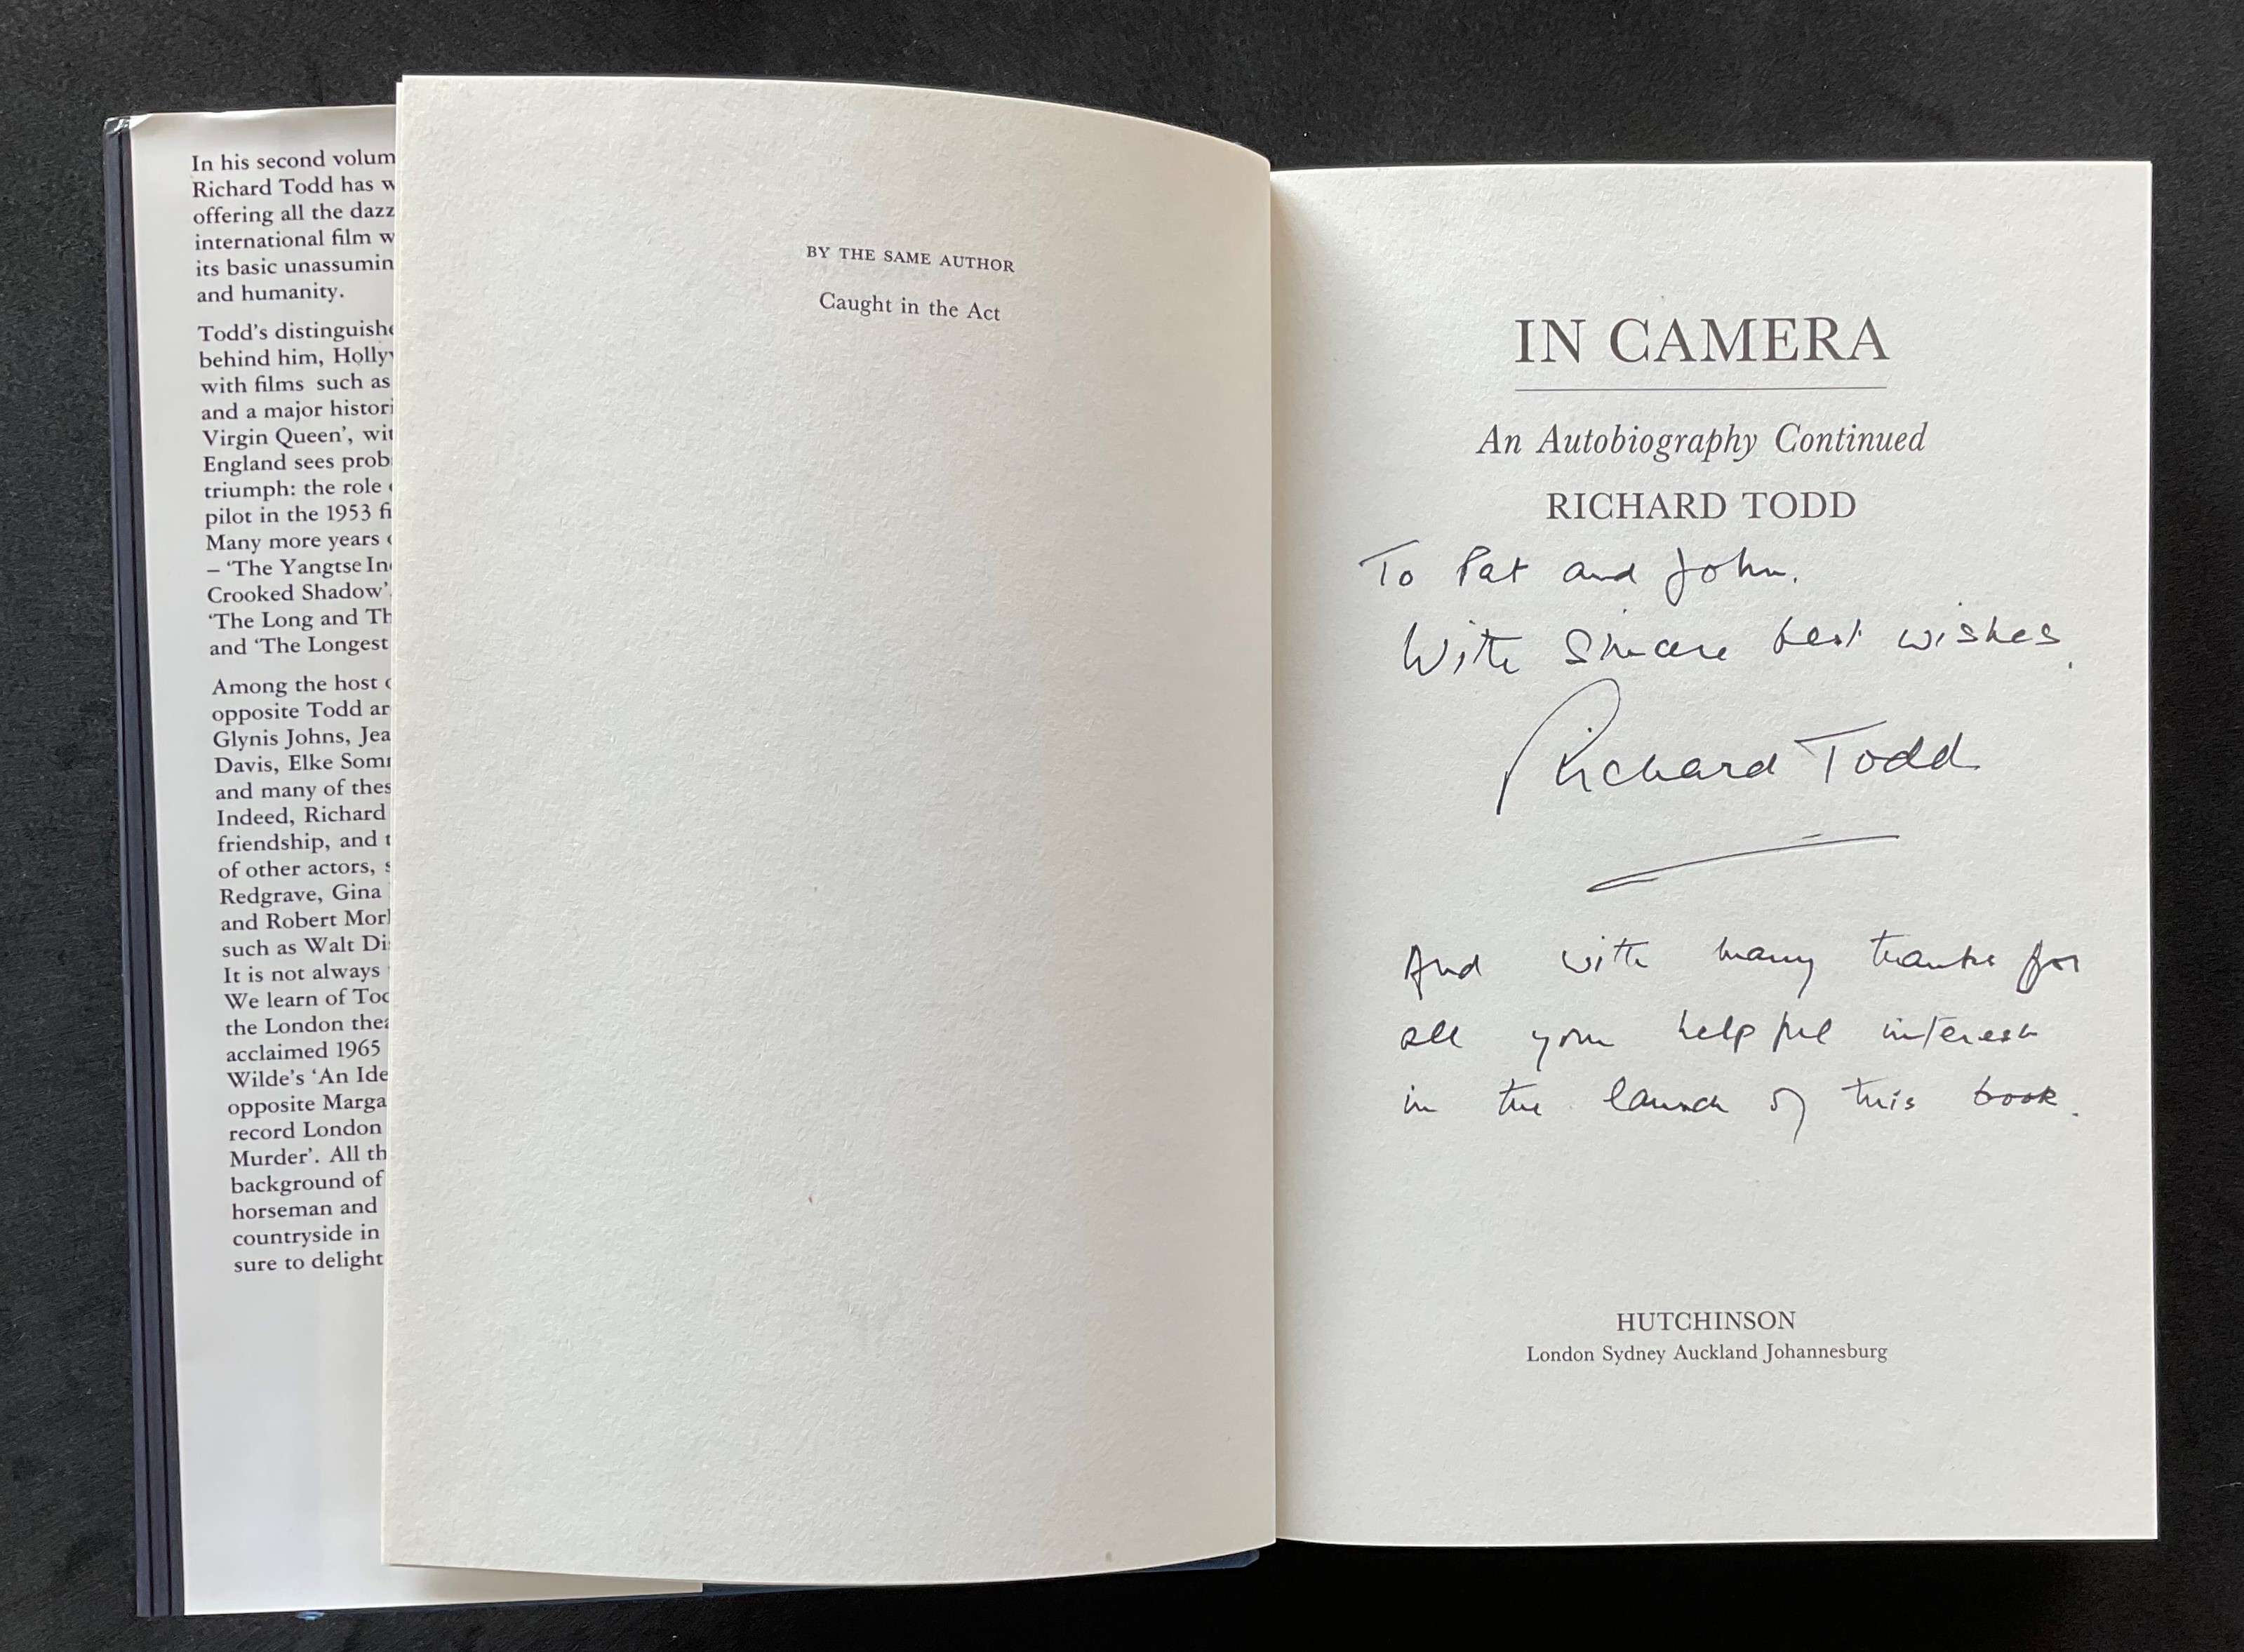 Actor Richard Todd's autobiography In Camera, signed, with nice inscription, dedicated to Pat and - Image 2 of 3